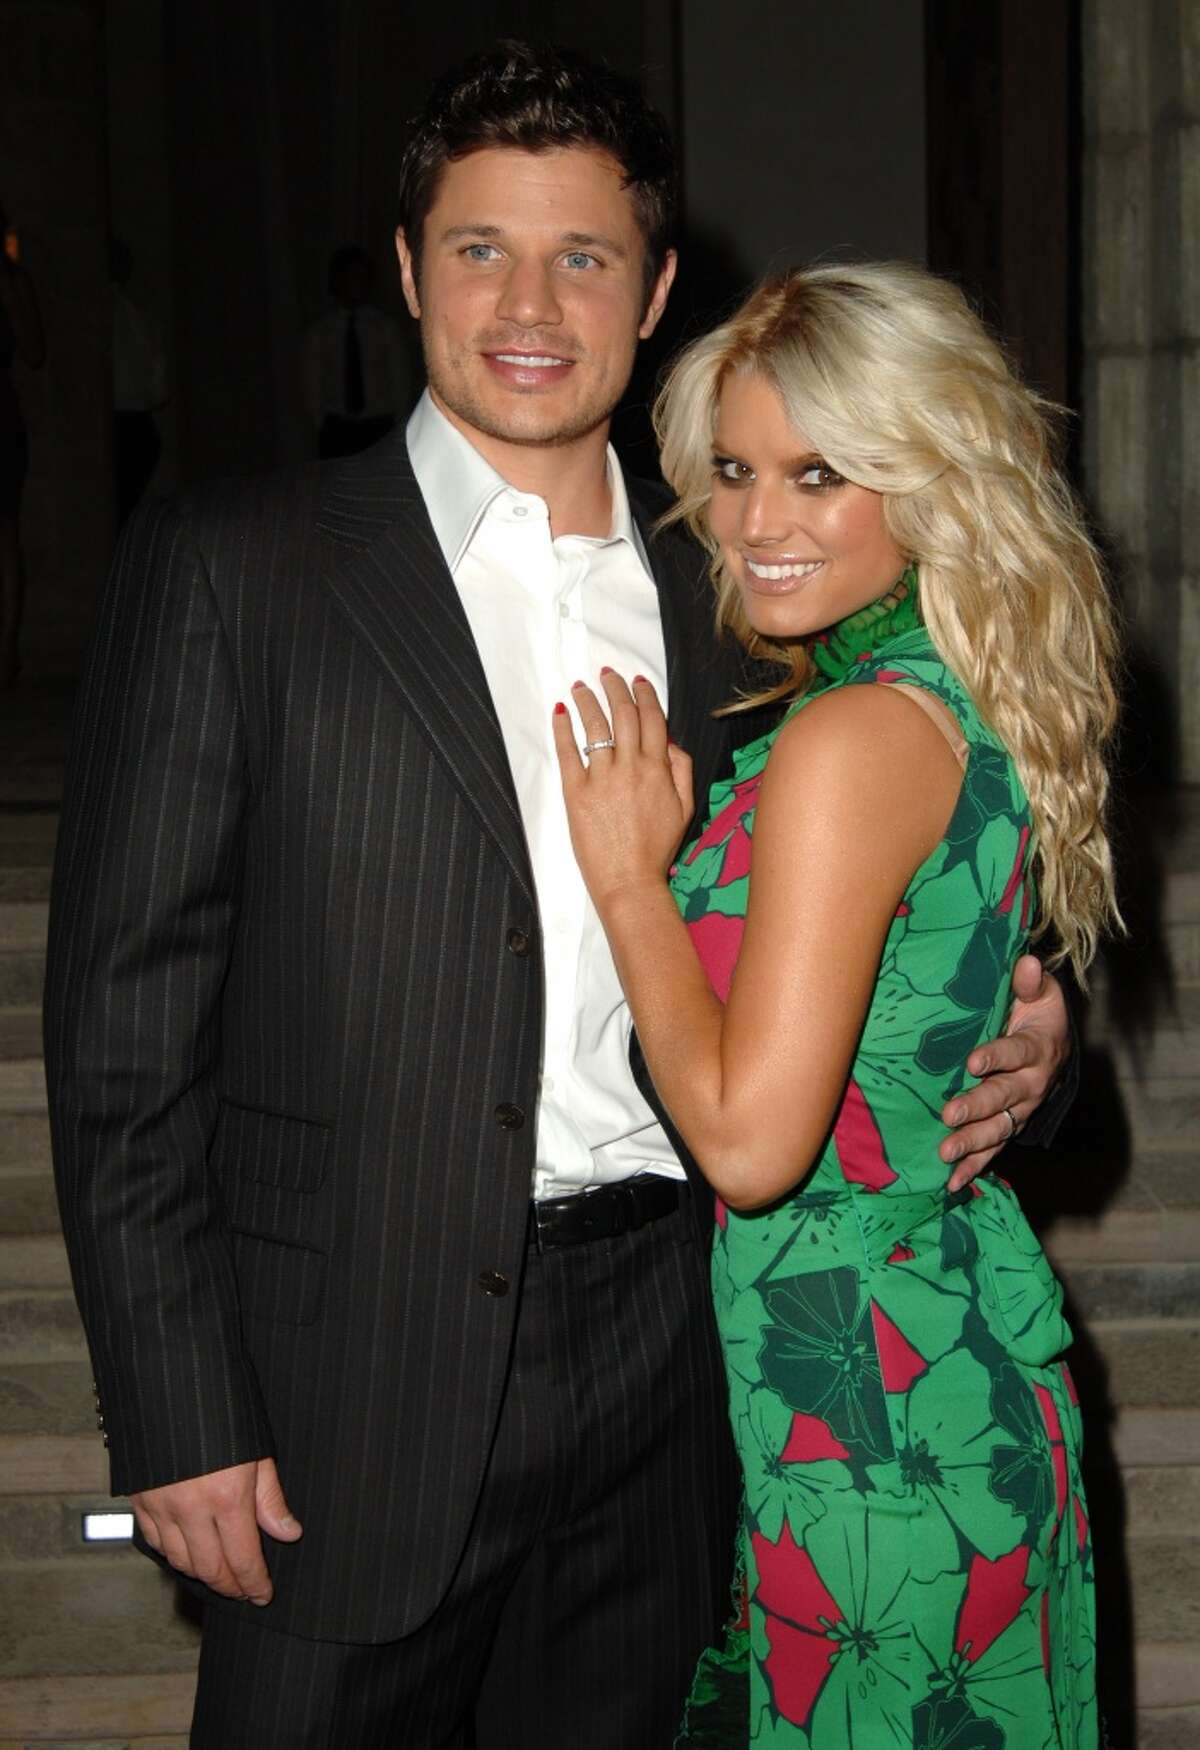 If reality-star love can't make it, what can? Nick Lachey and Jessica Simpson.